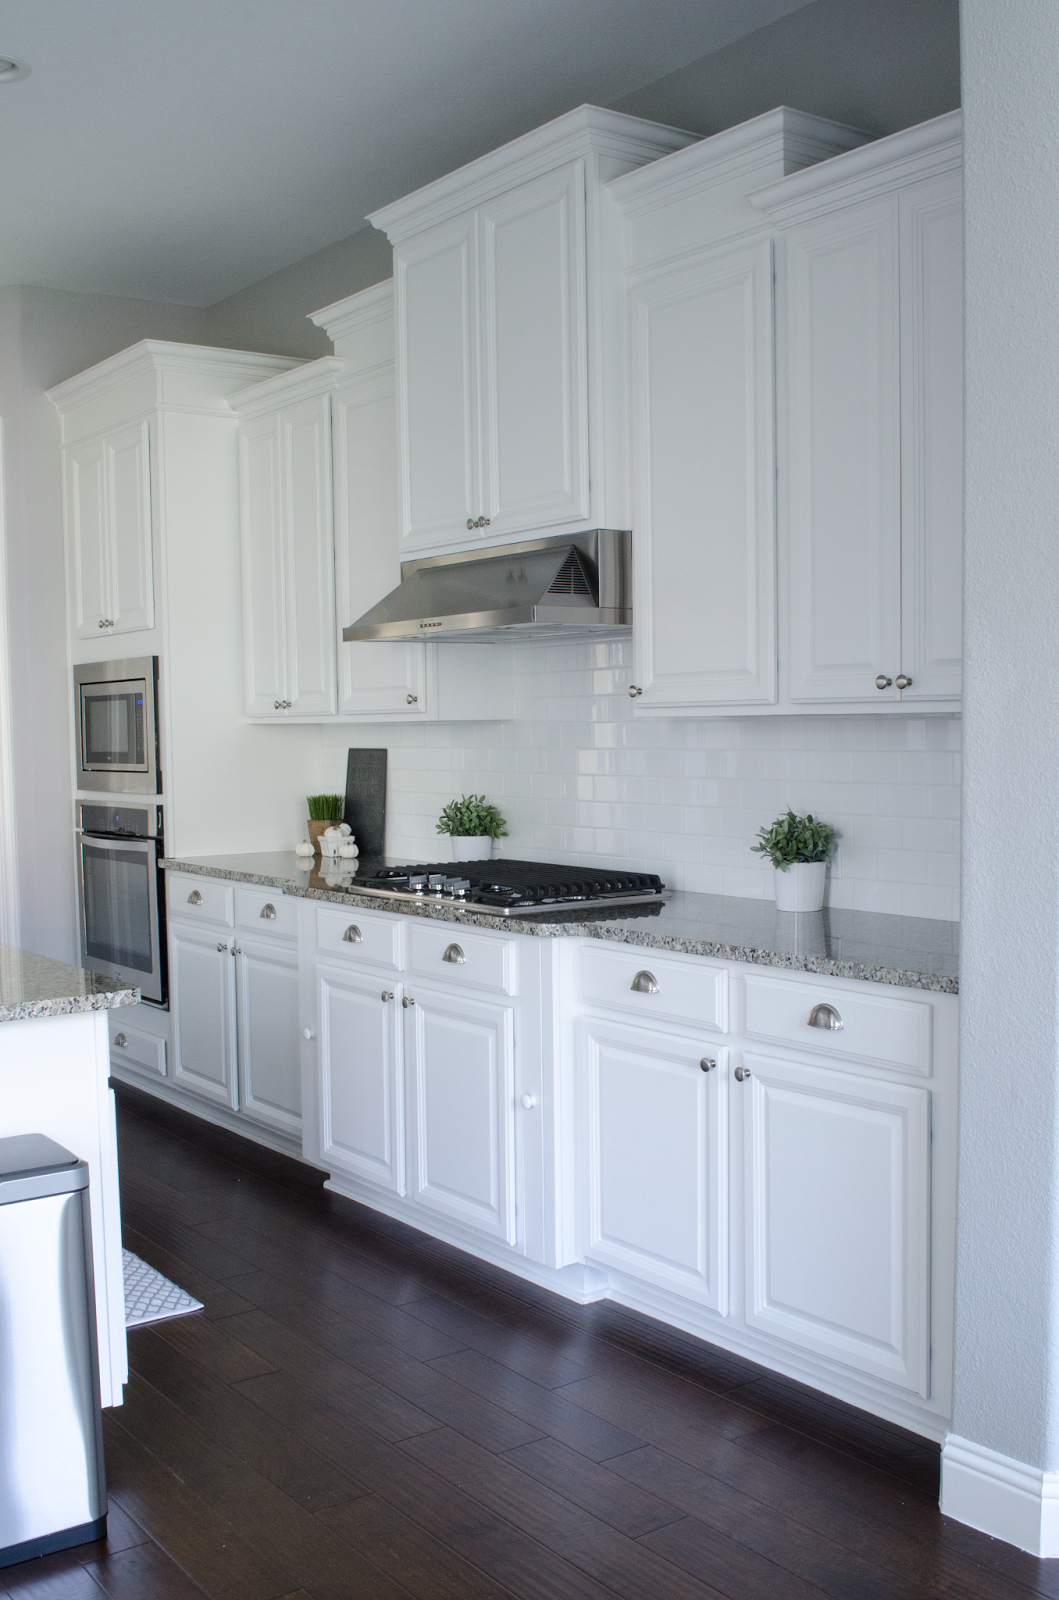 Uneven Kitchen Floor Creamy White Cabinets Paired With Supreme White Quartzite